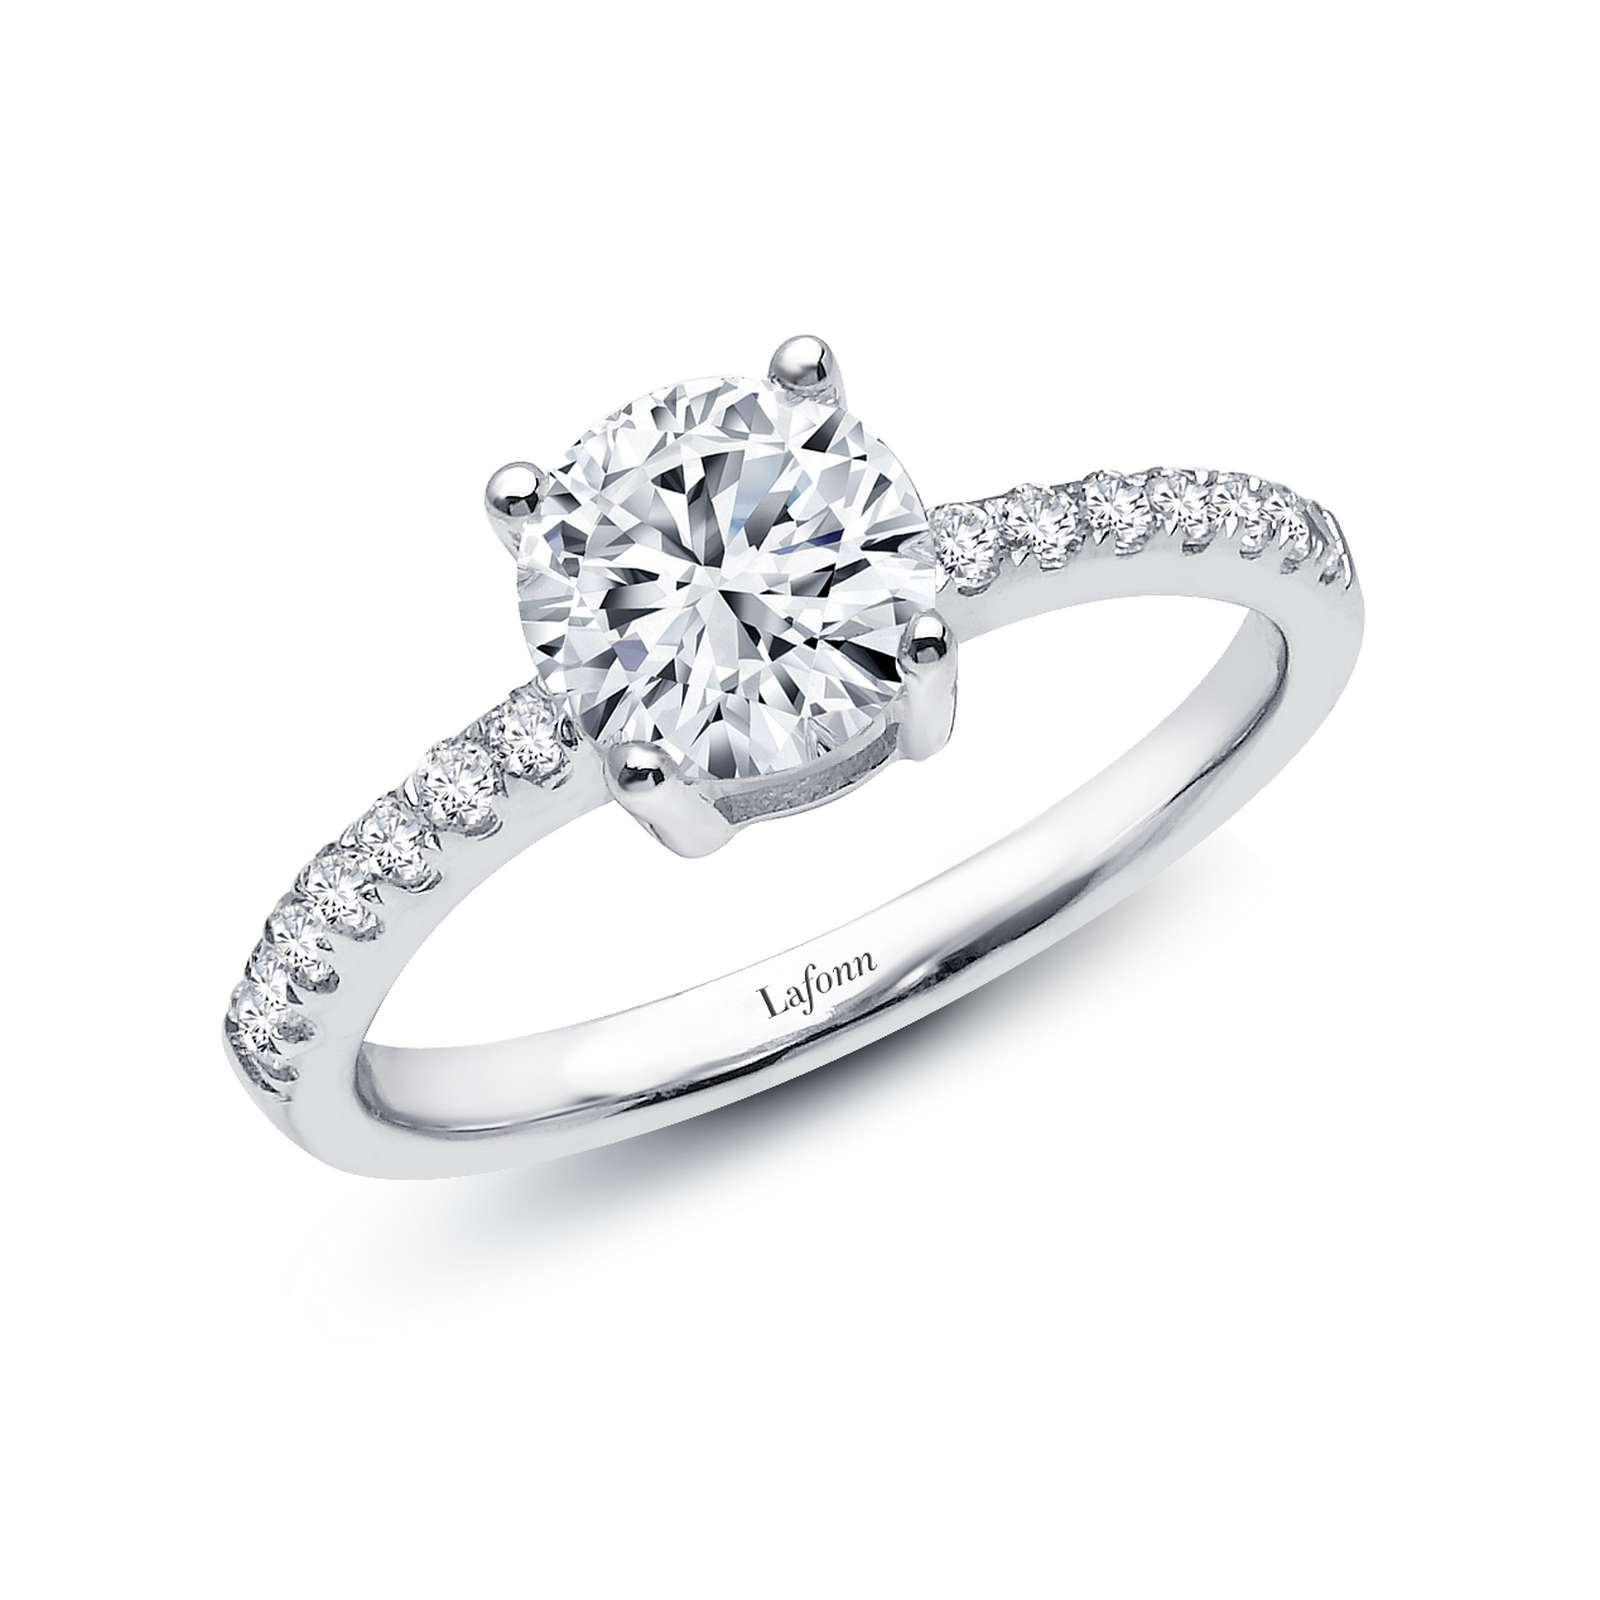 Classic Platinum Ring by Lafonn